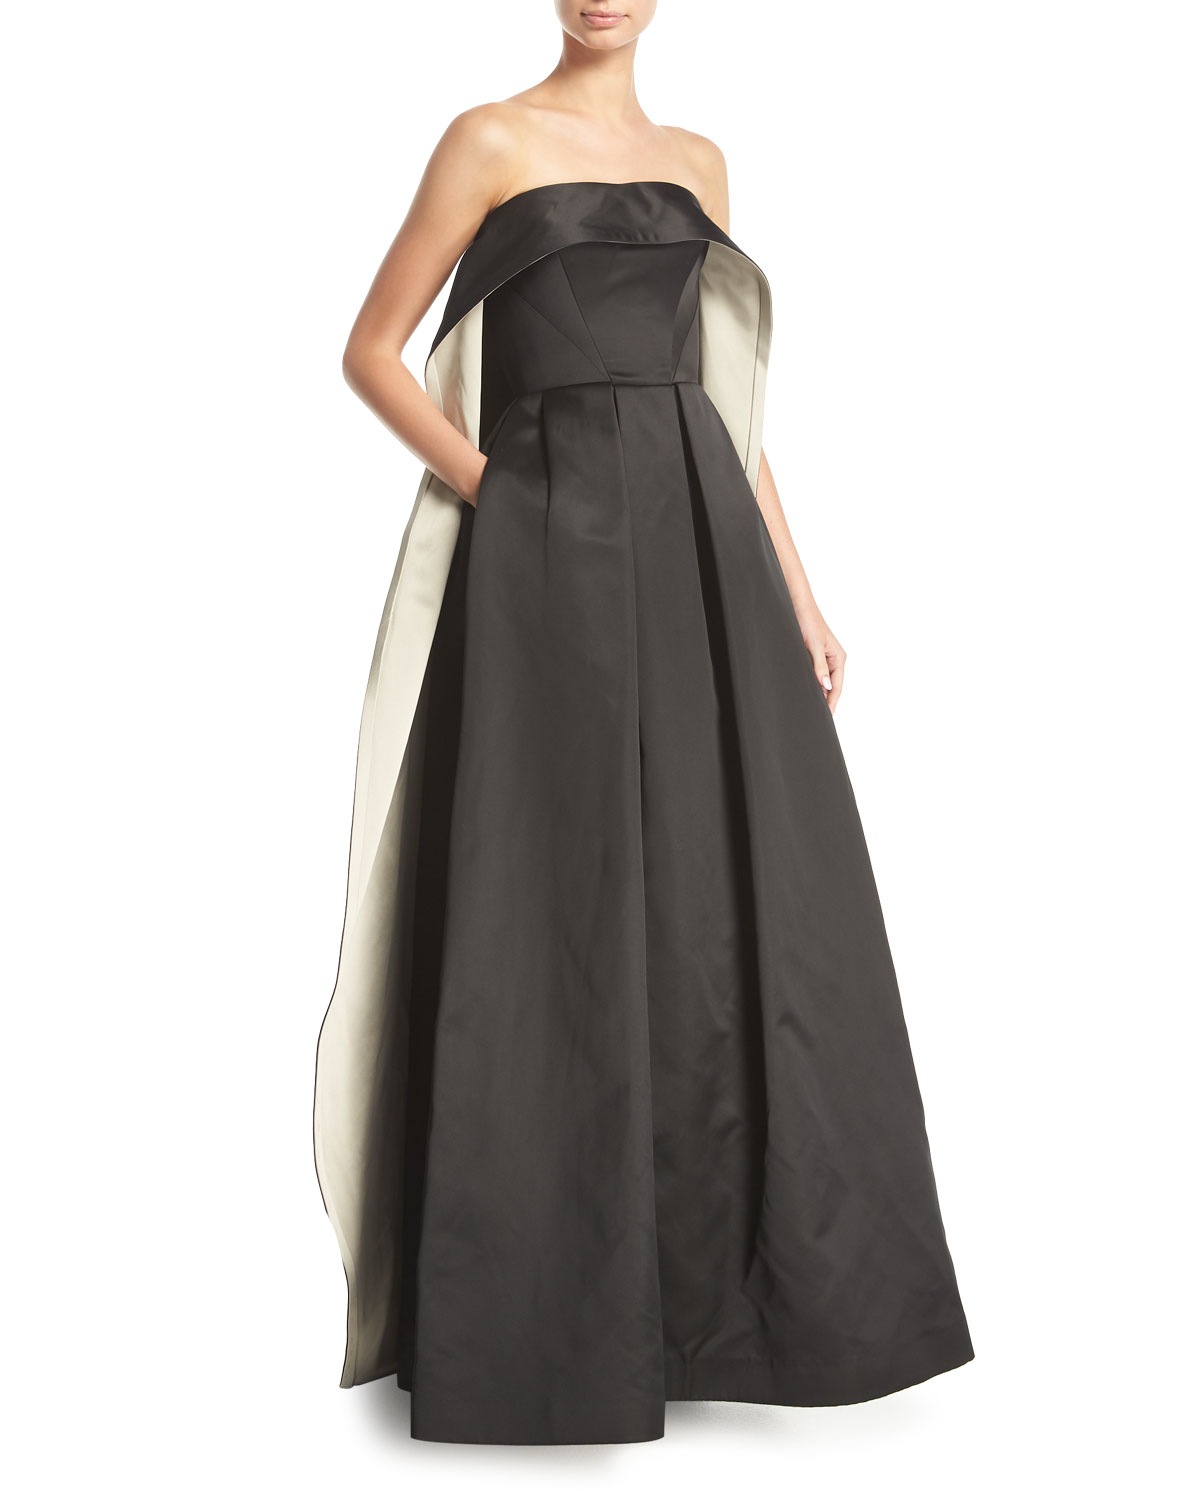 Zac Posen Strapless Cape-Back Evening Gown | Neiman Marcus